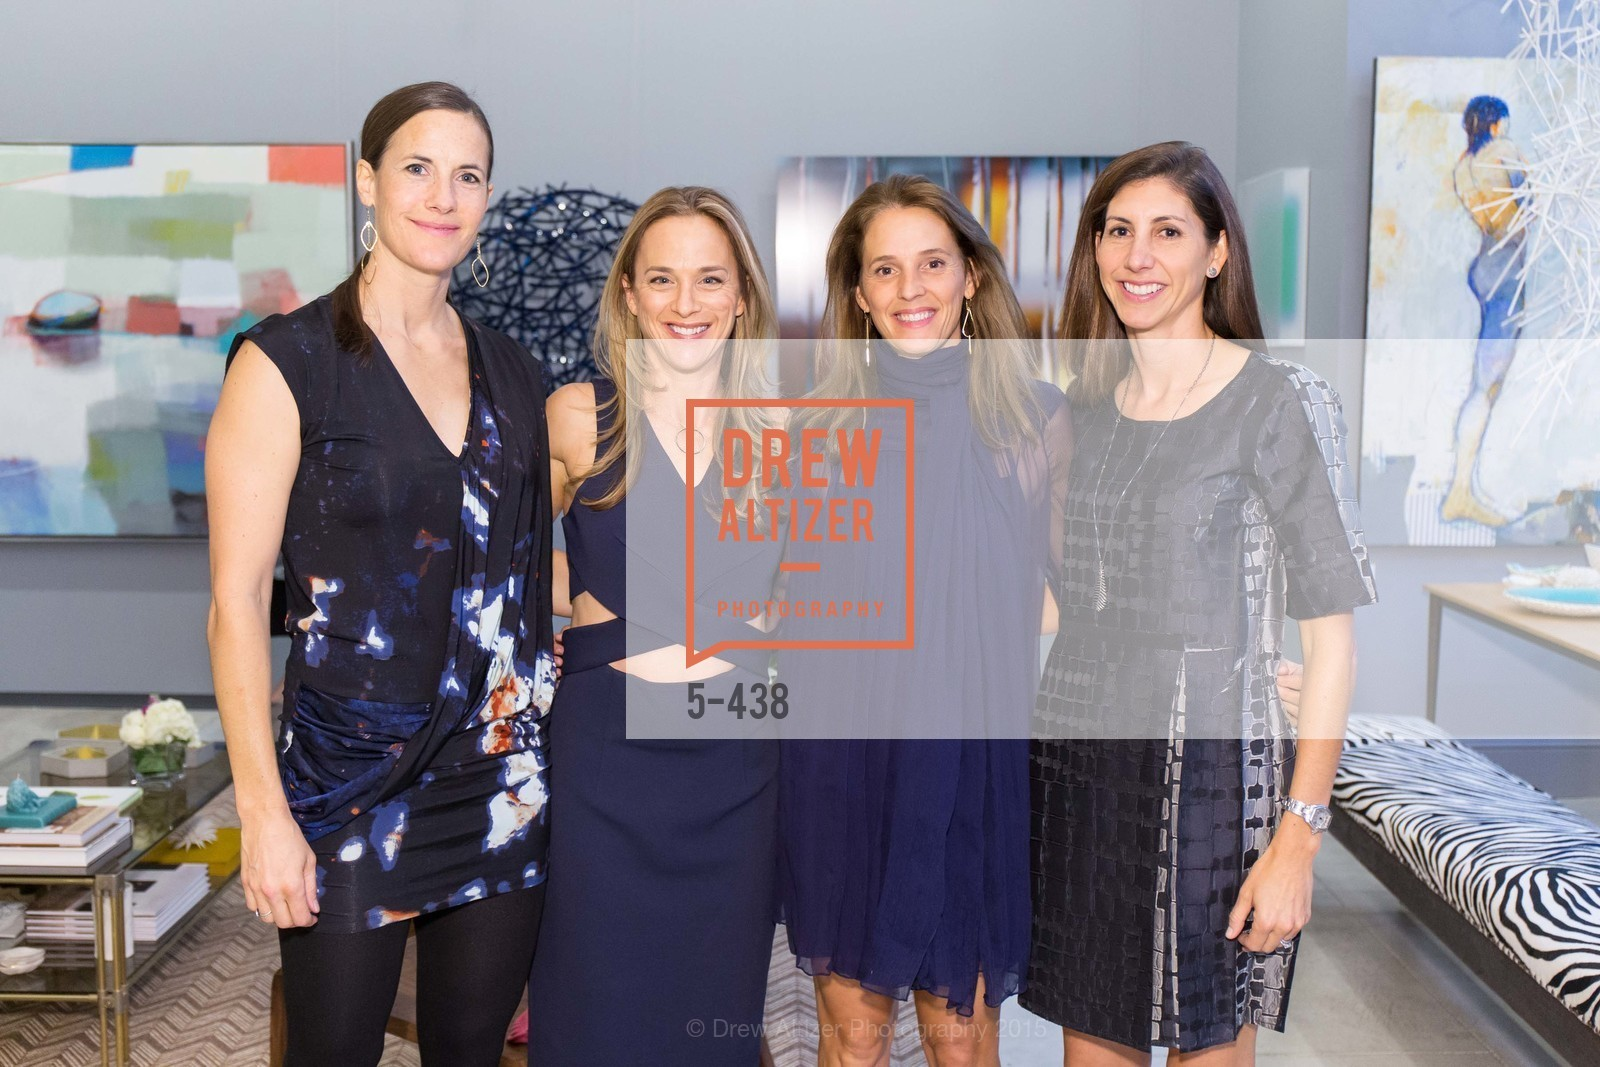 Svea Lin Sol, Stephanie Breitbard, Evie Simon, Tinsley Hutson-Wiley, Stephanie Breitbard Fine Arts San Francisco Opening, Stephanie Breitbard Fine Arts. 843 Montgomery St, November 4th, 2015,Drew Altizer, Drew Altizer Photography, full-service agency, private events, San Francisco photographer, photographer california